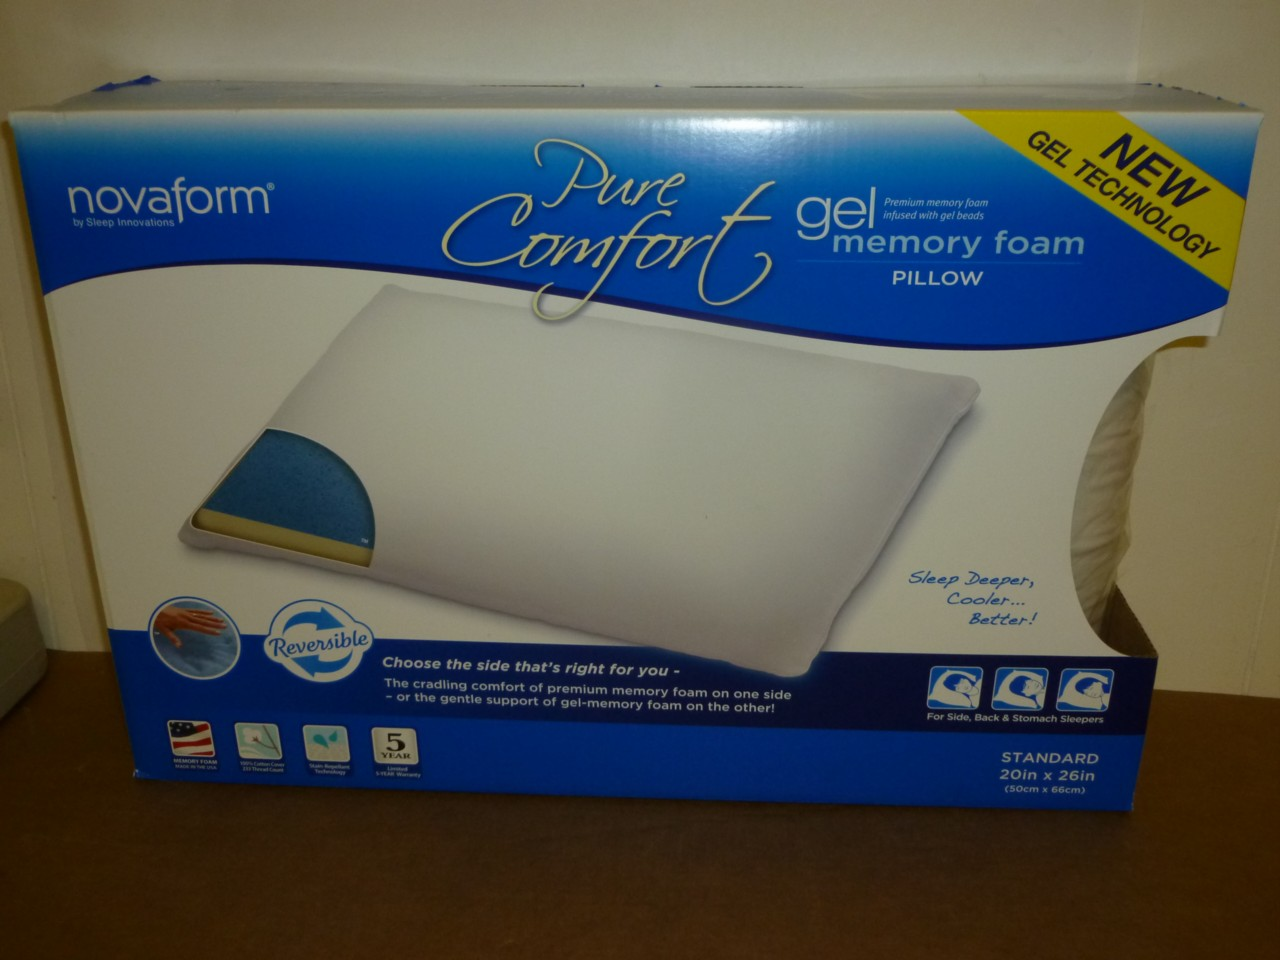 Cradling Comfort Elite Traditional Memory Foam Pillow : NEW! Novaform Pure Comfort Memory Foam Gel Pillow eBay